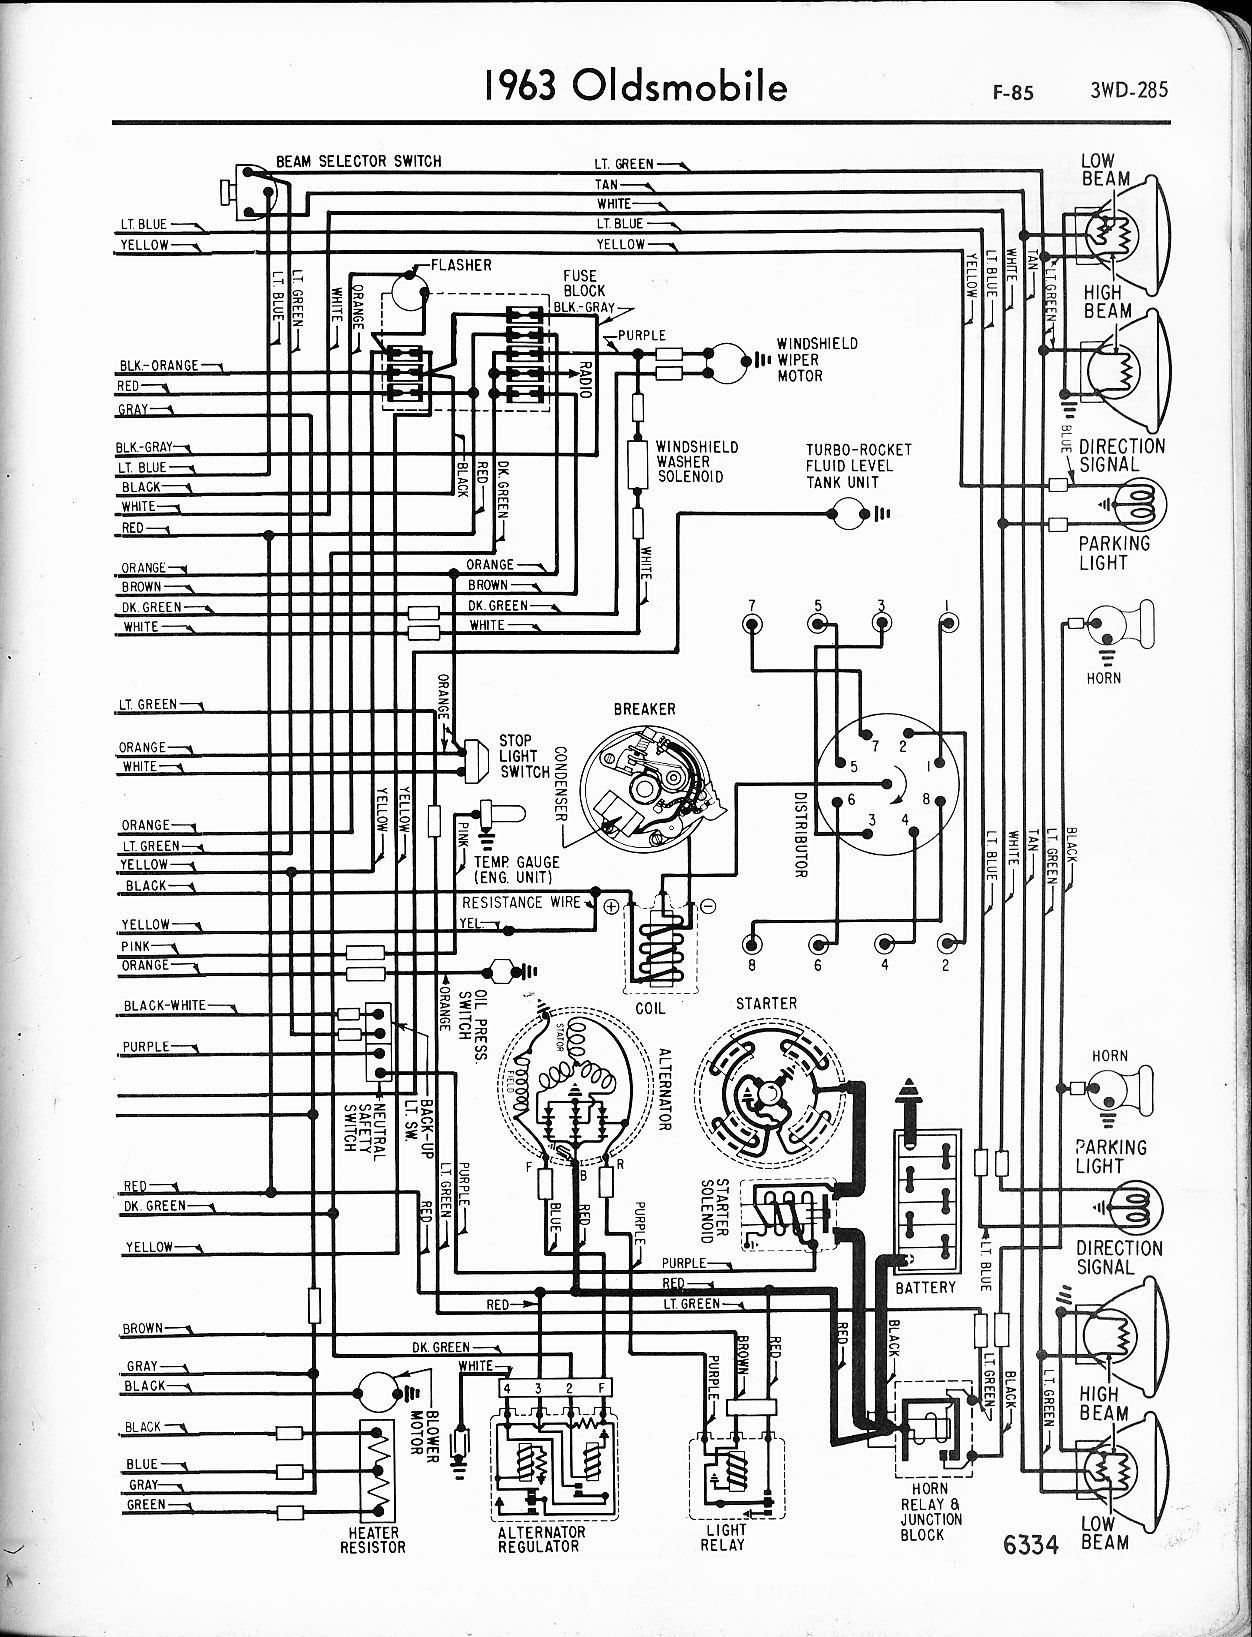 Unique Honeywell thermostat Th5220d1029 Wiring Diagram #